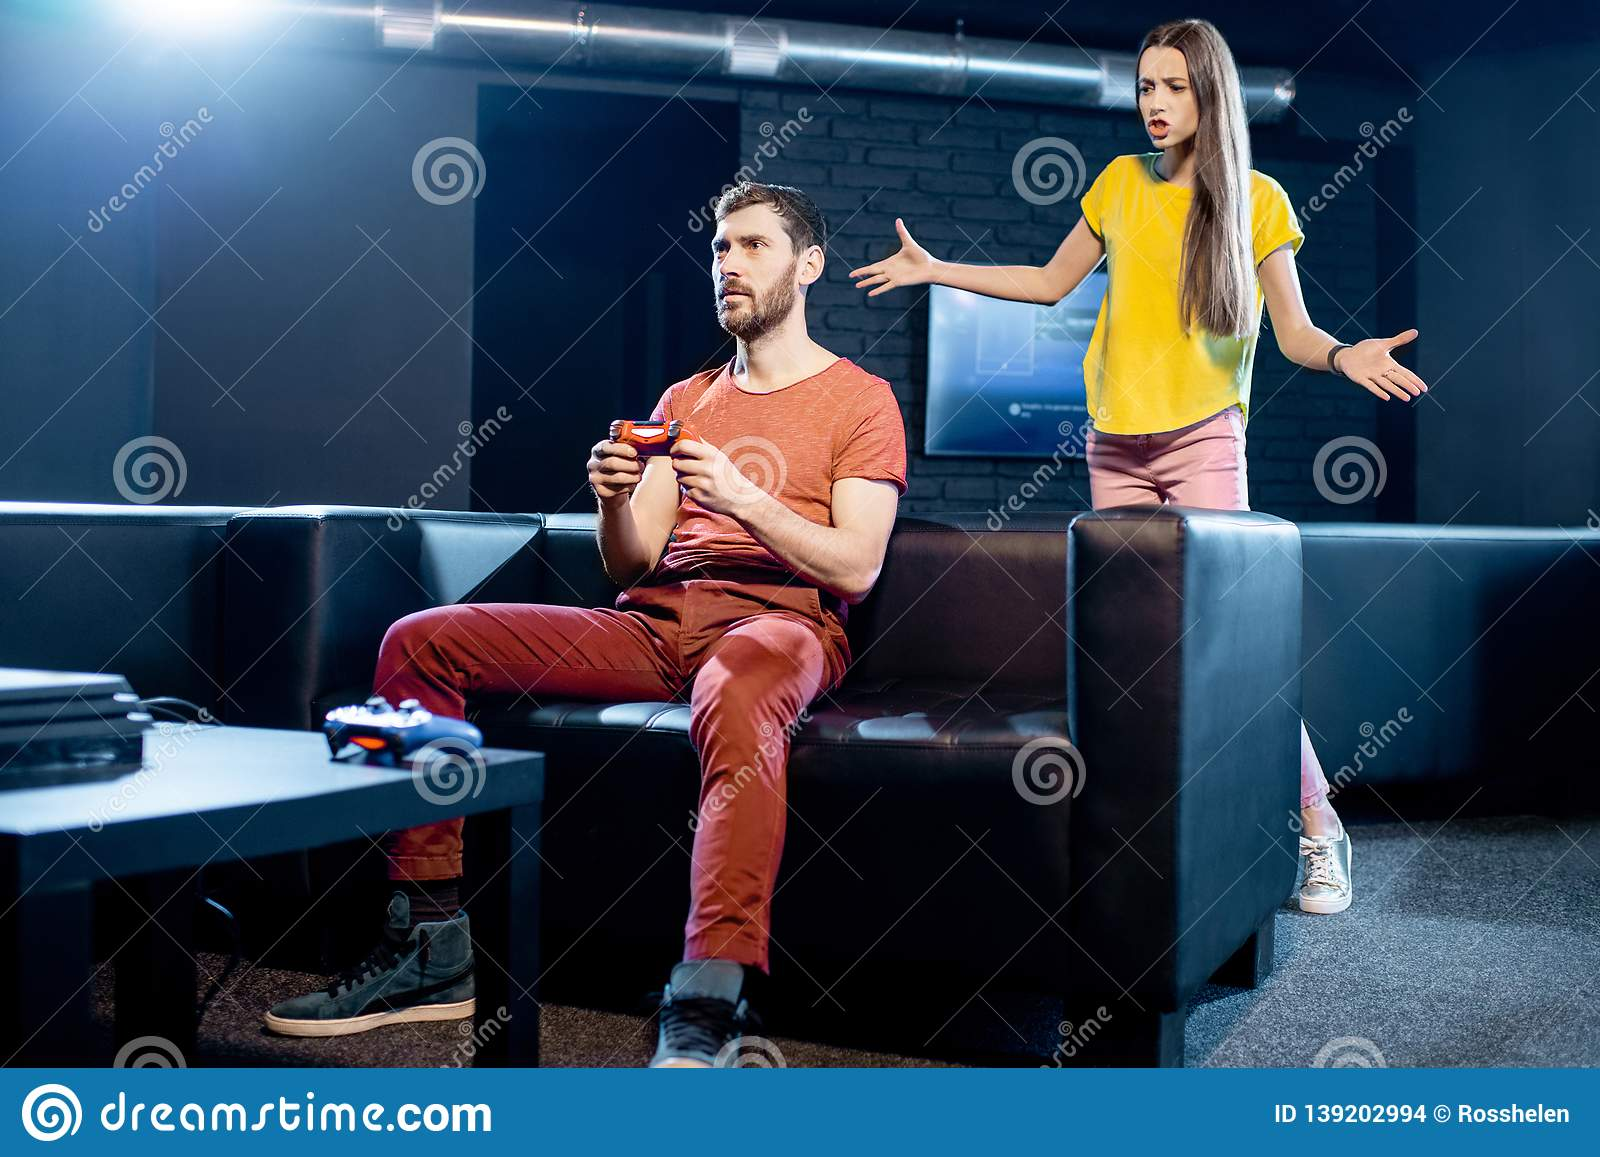 Woman angry at her boyfriend playing video games